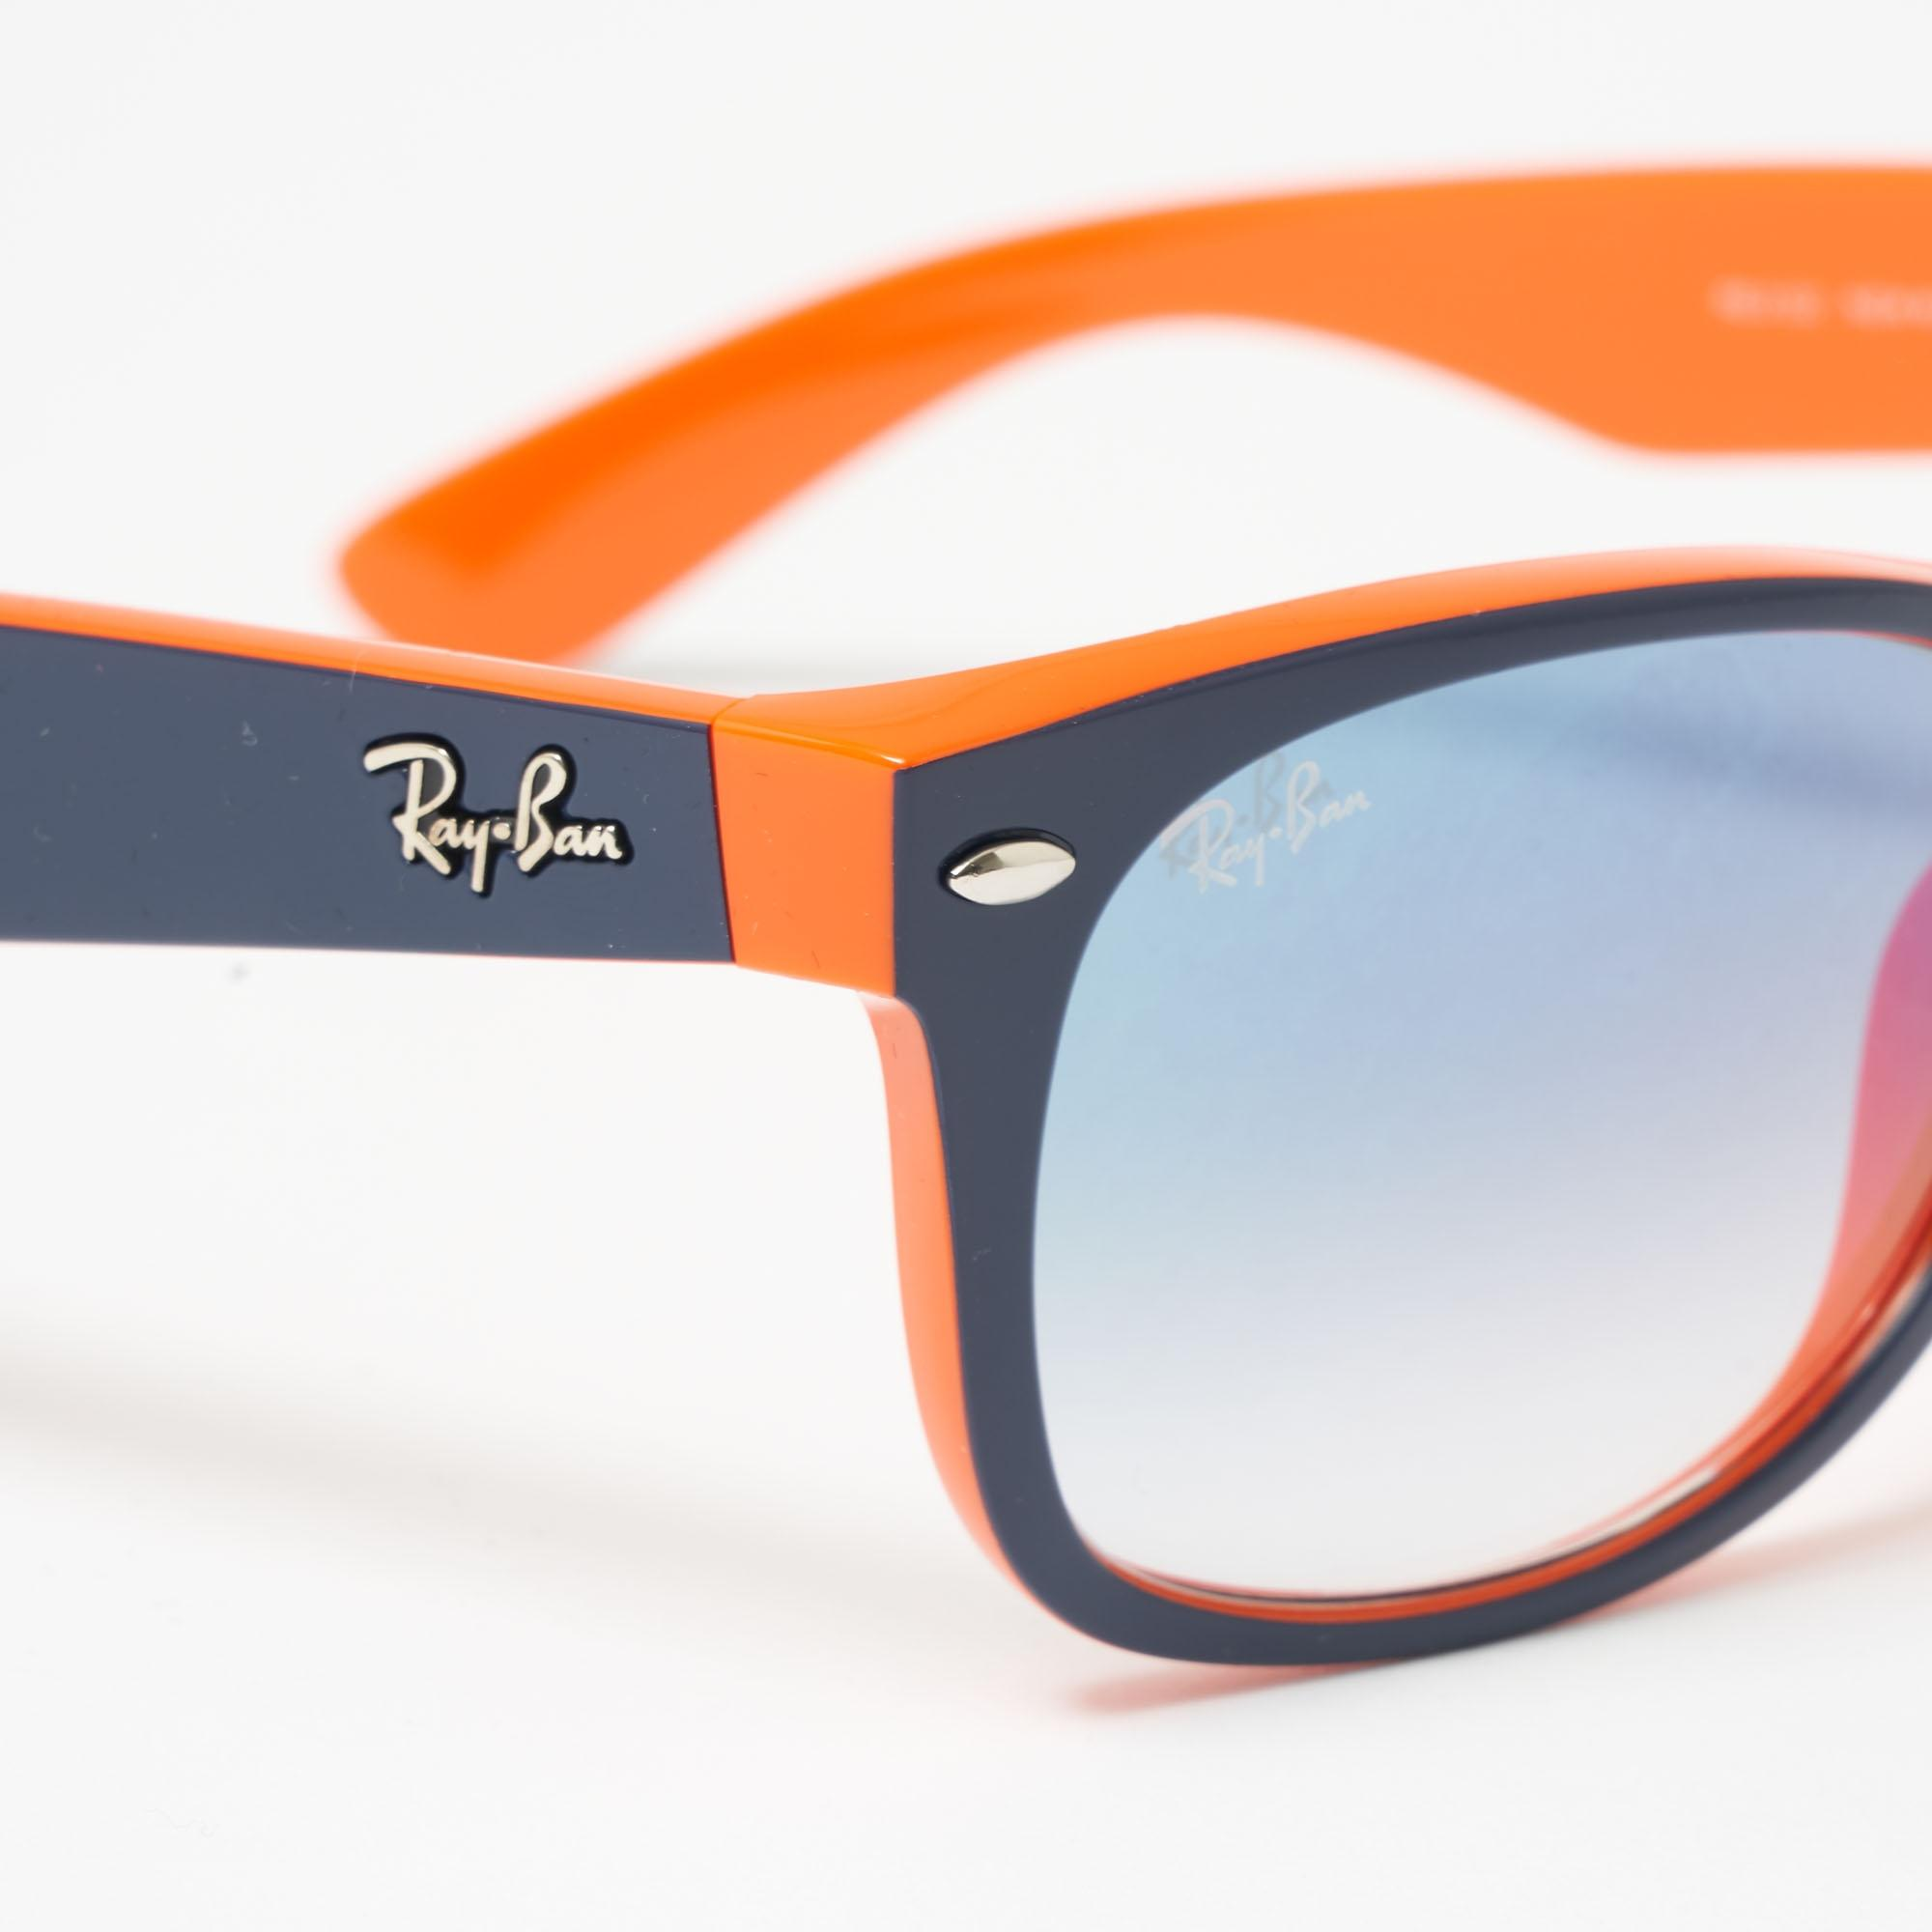 e2e96f9a78 Ray-Ban - New Wayfarer Colour Mix Blue Orange Sunglasses 52-145 0Rb2132.  View fullscreen